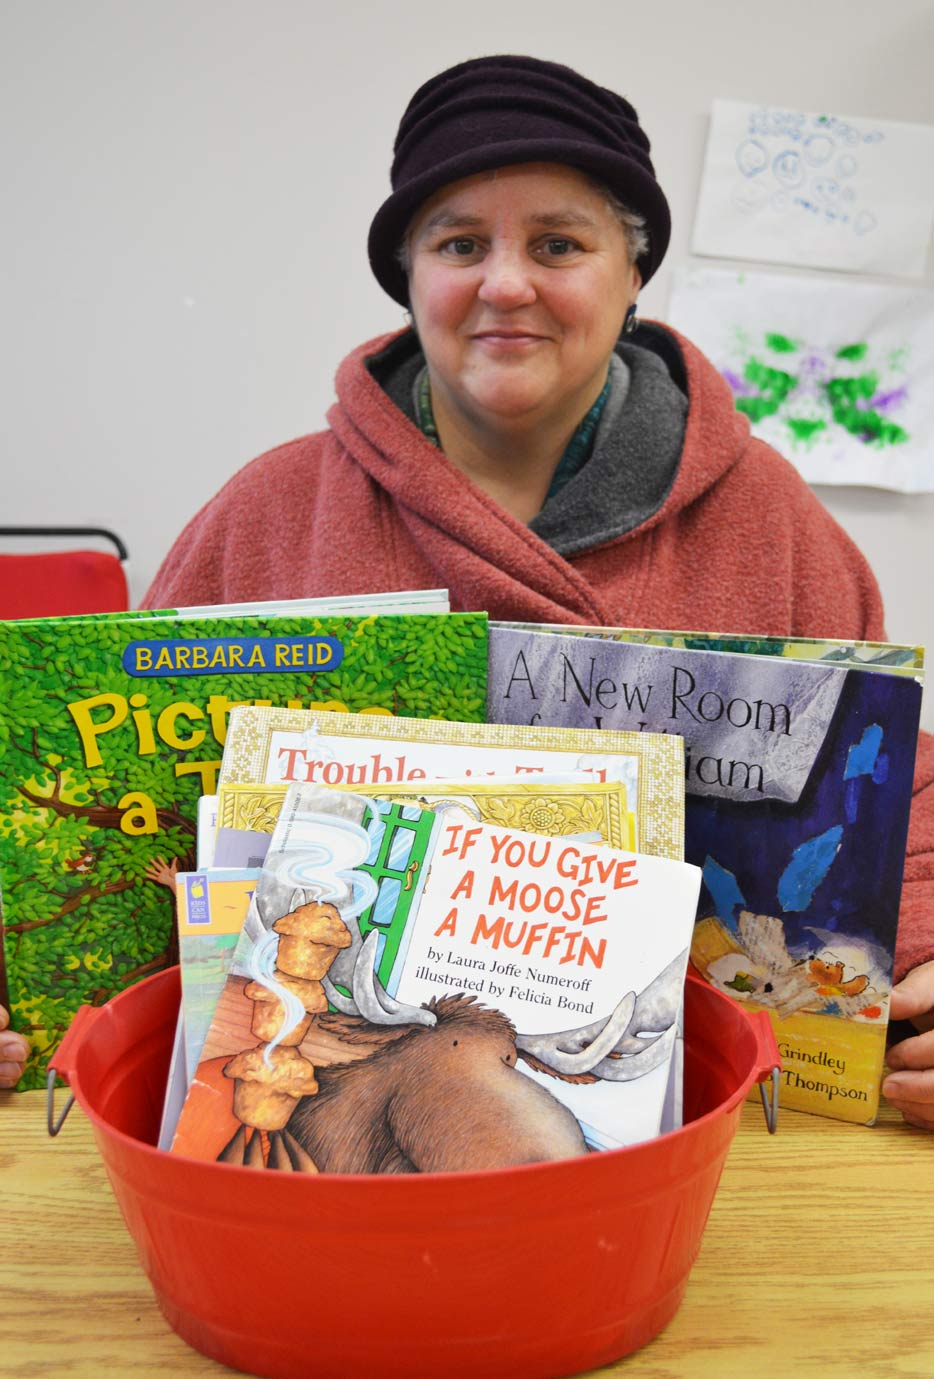 Inkster is like the Mary Poppins of books. She's touched a lot of lives through literacy and story-telling.